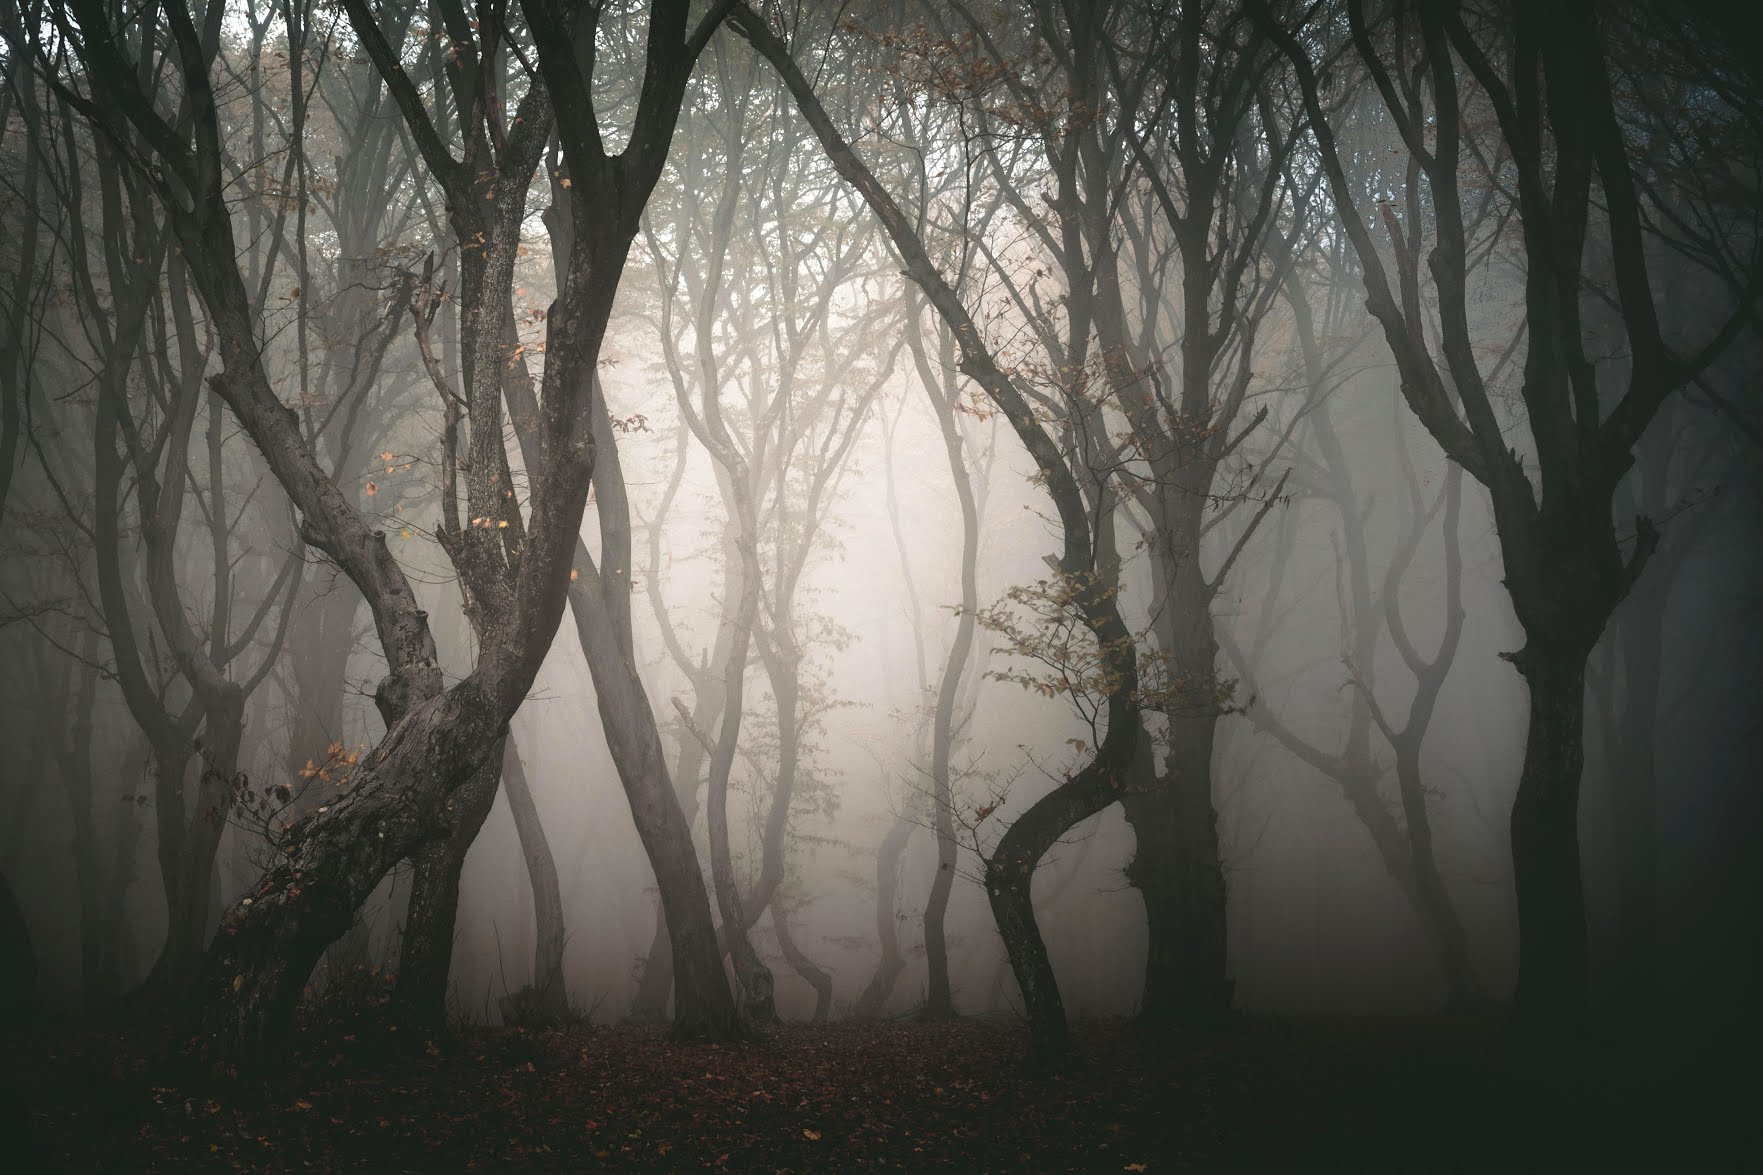 This image may contain Weather, Nature, Outdoors, Mist, and Fog